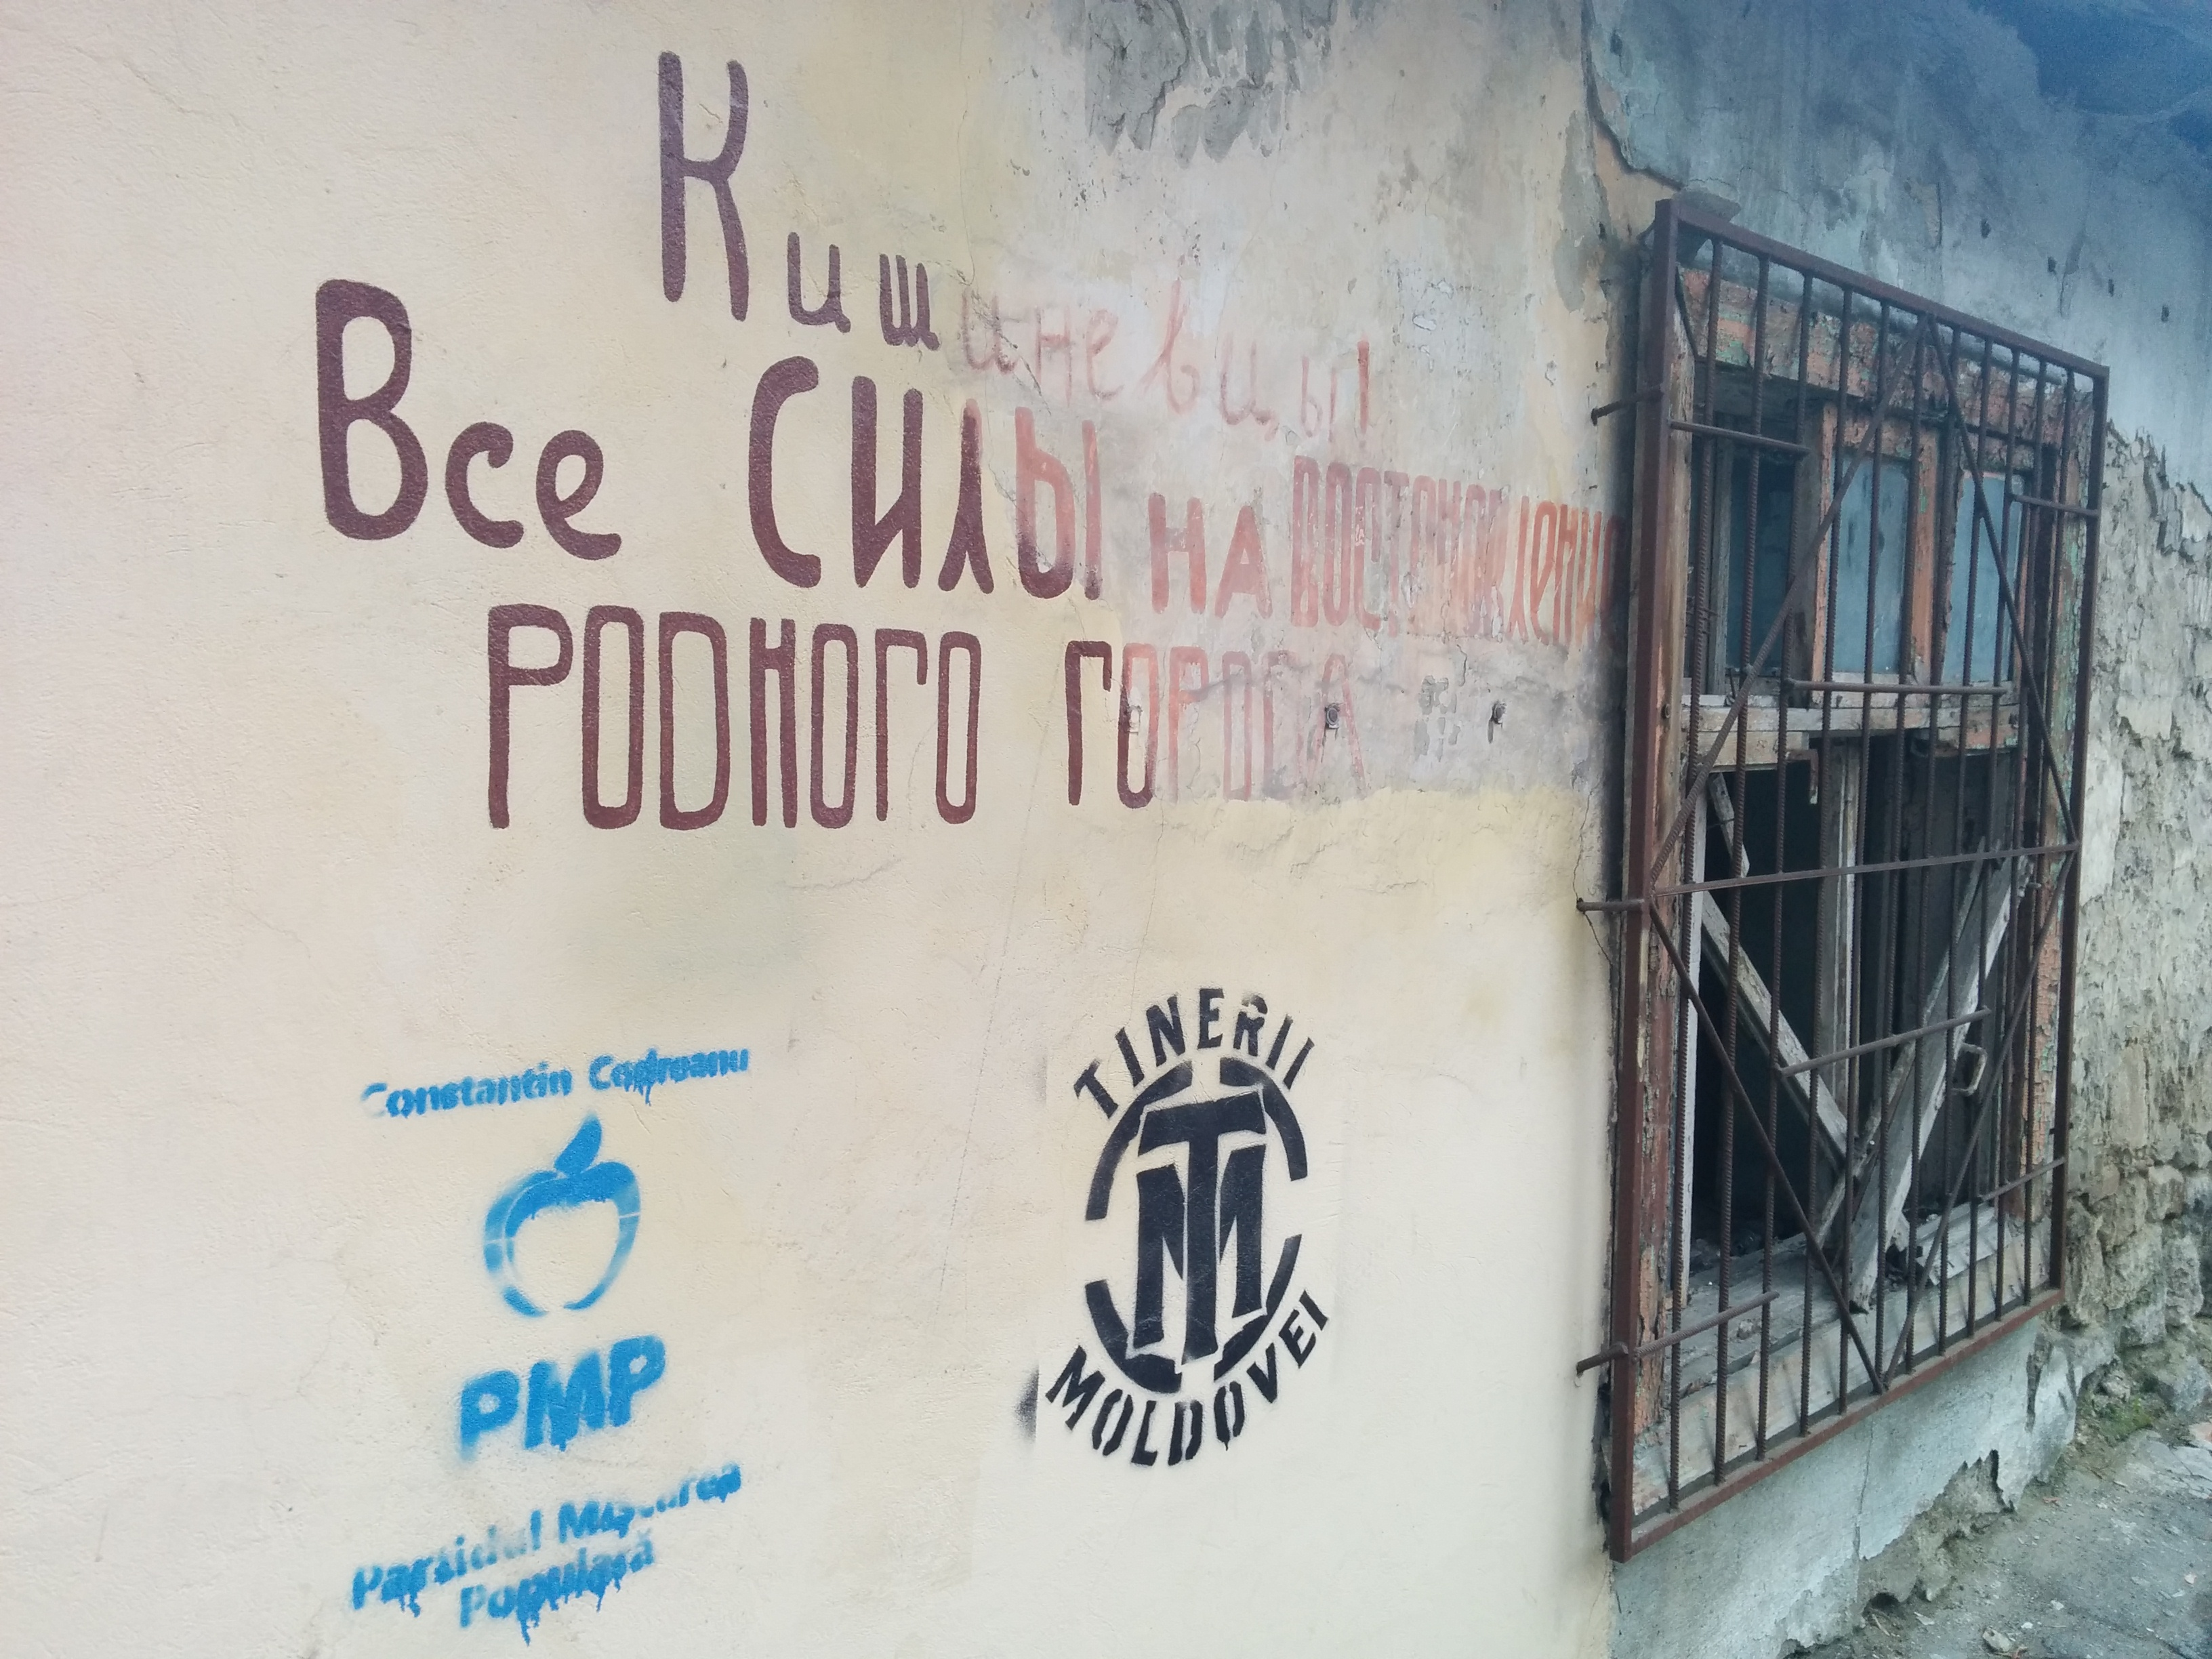 Graffiti in Chisinau. Kishinevers, put your all efforts to rebuild your native city